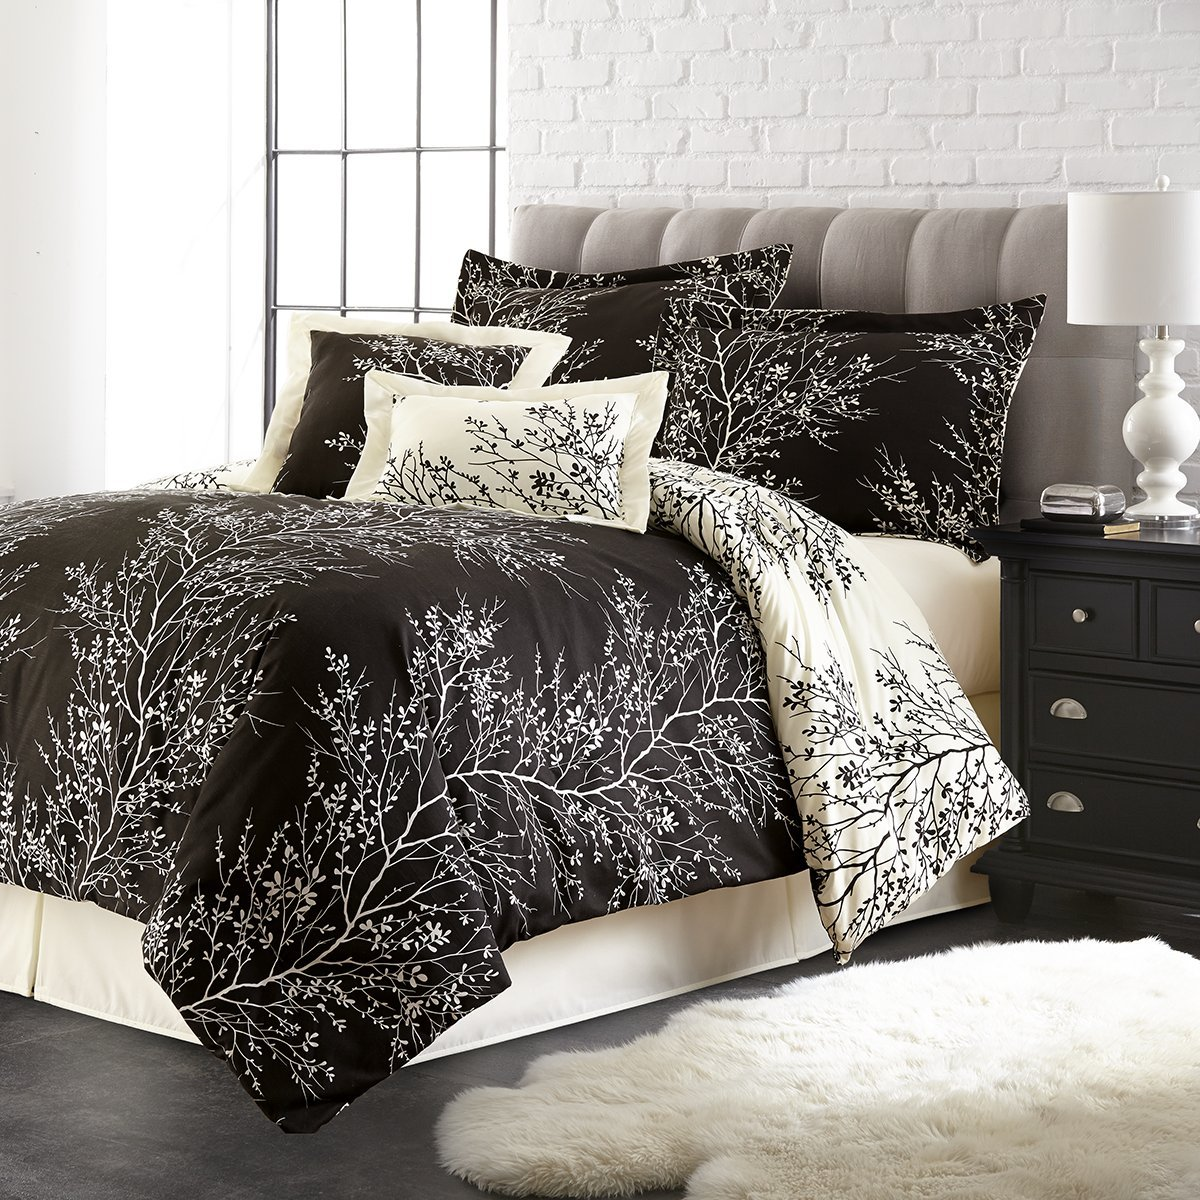 com size king piece comforter croscill dp fashions set kitchen bali harvest home amazon